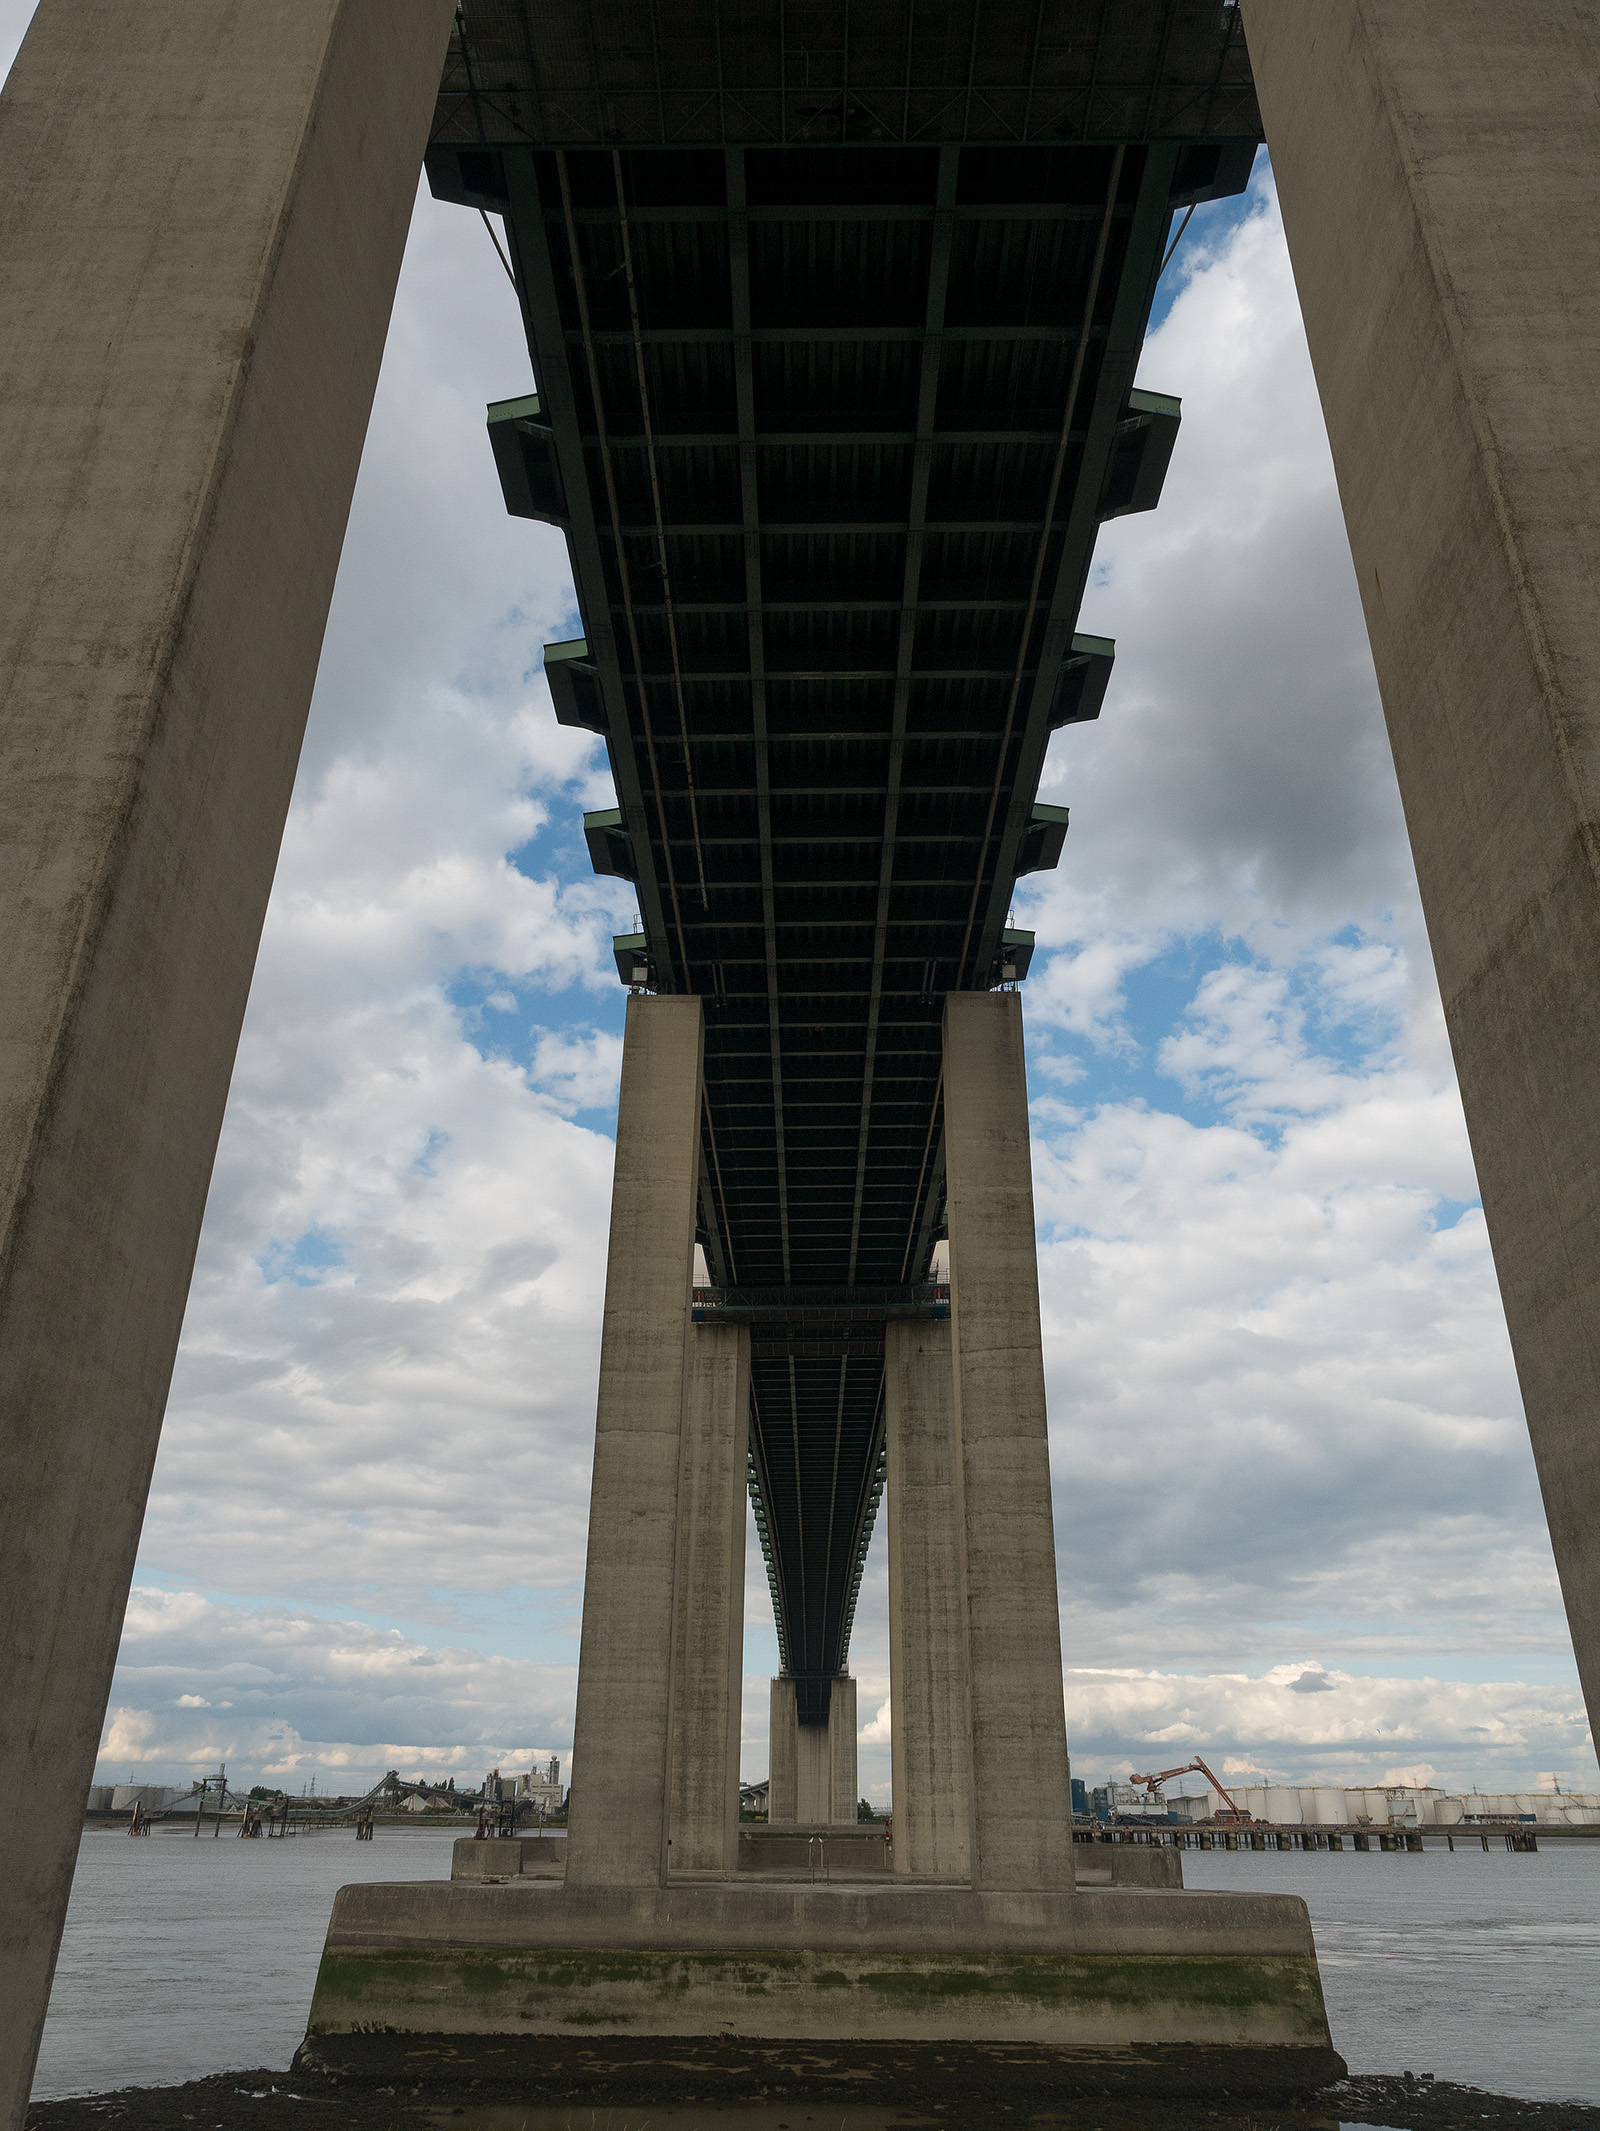 Directly under the QE2 bridge